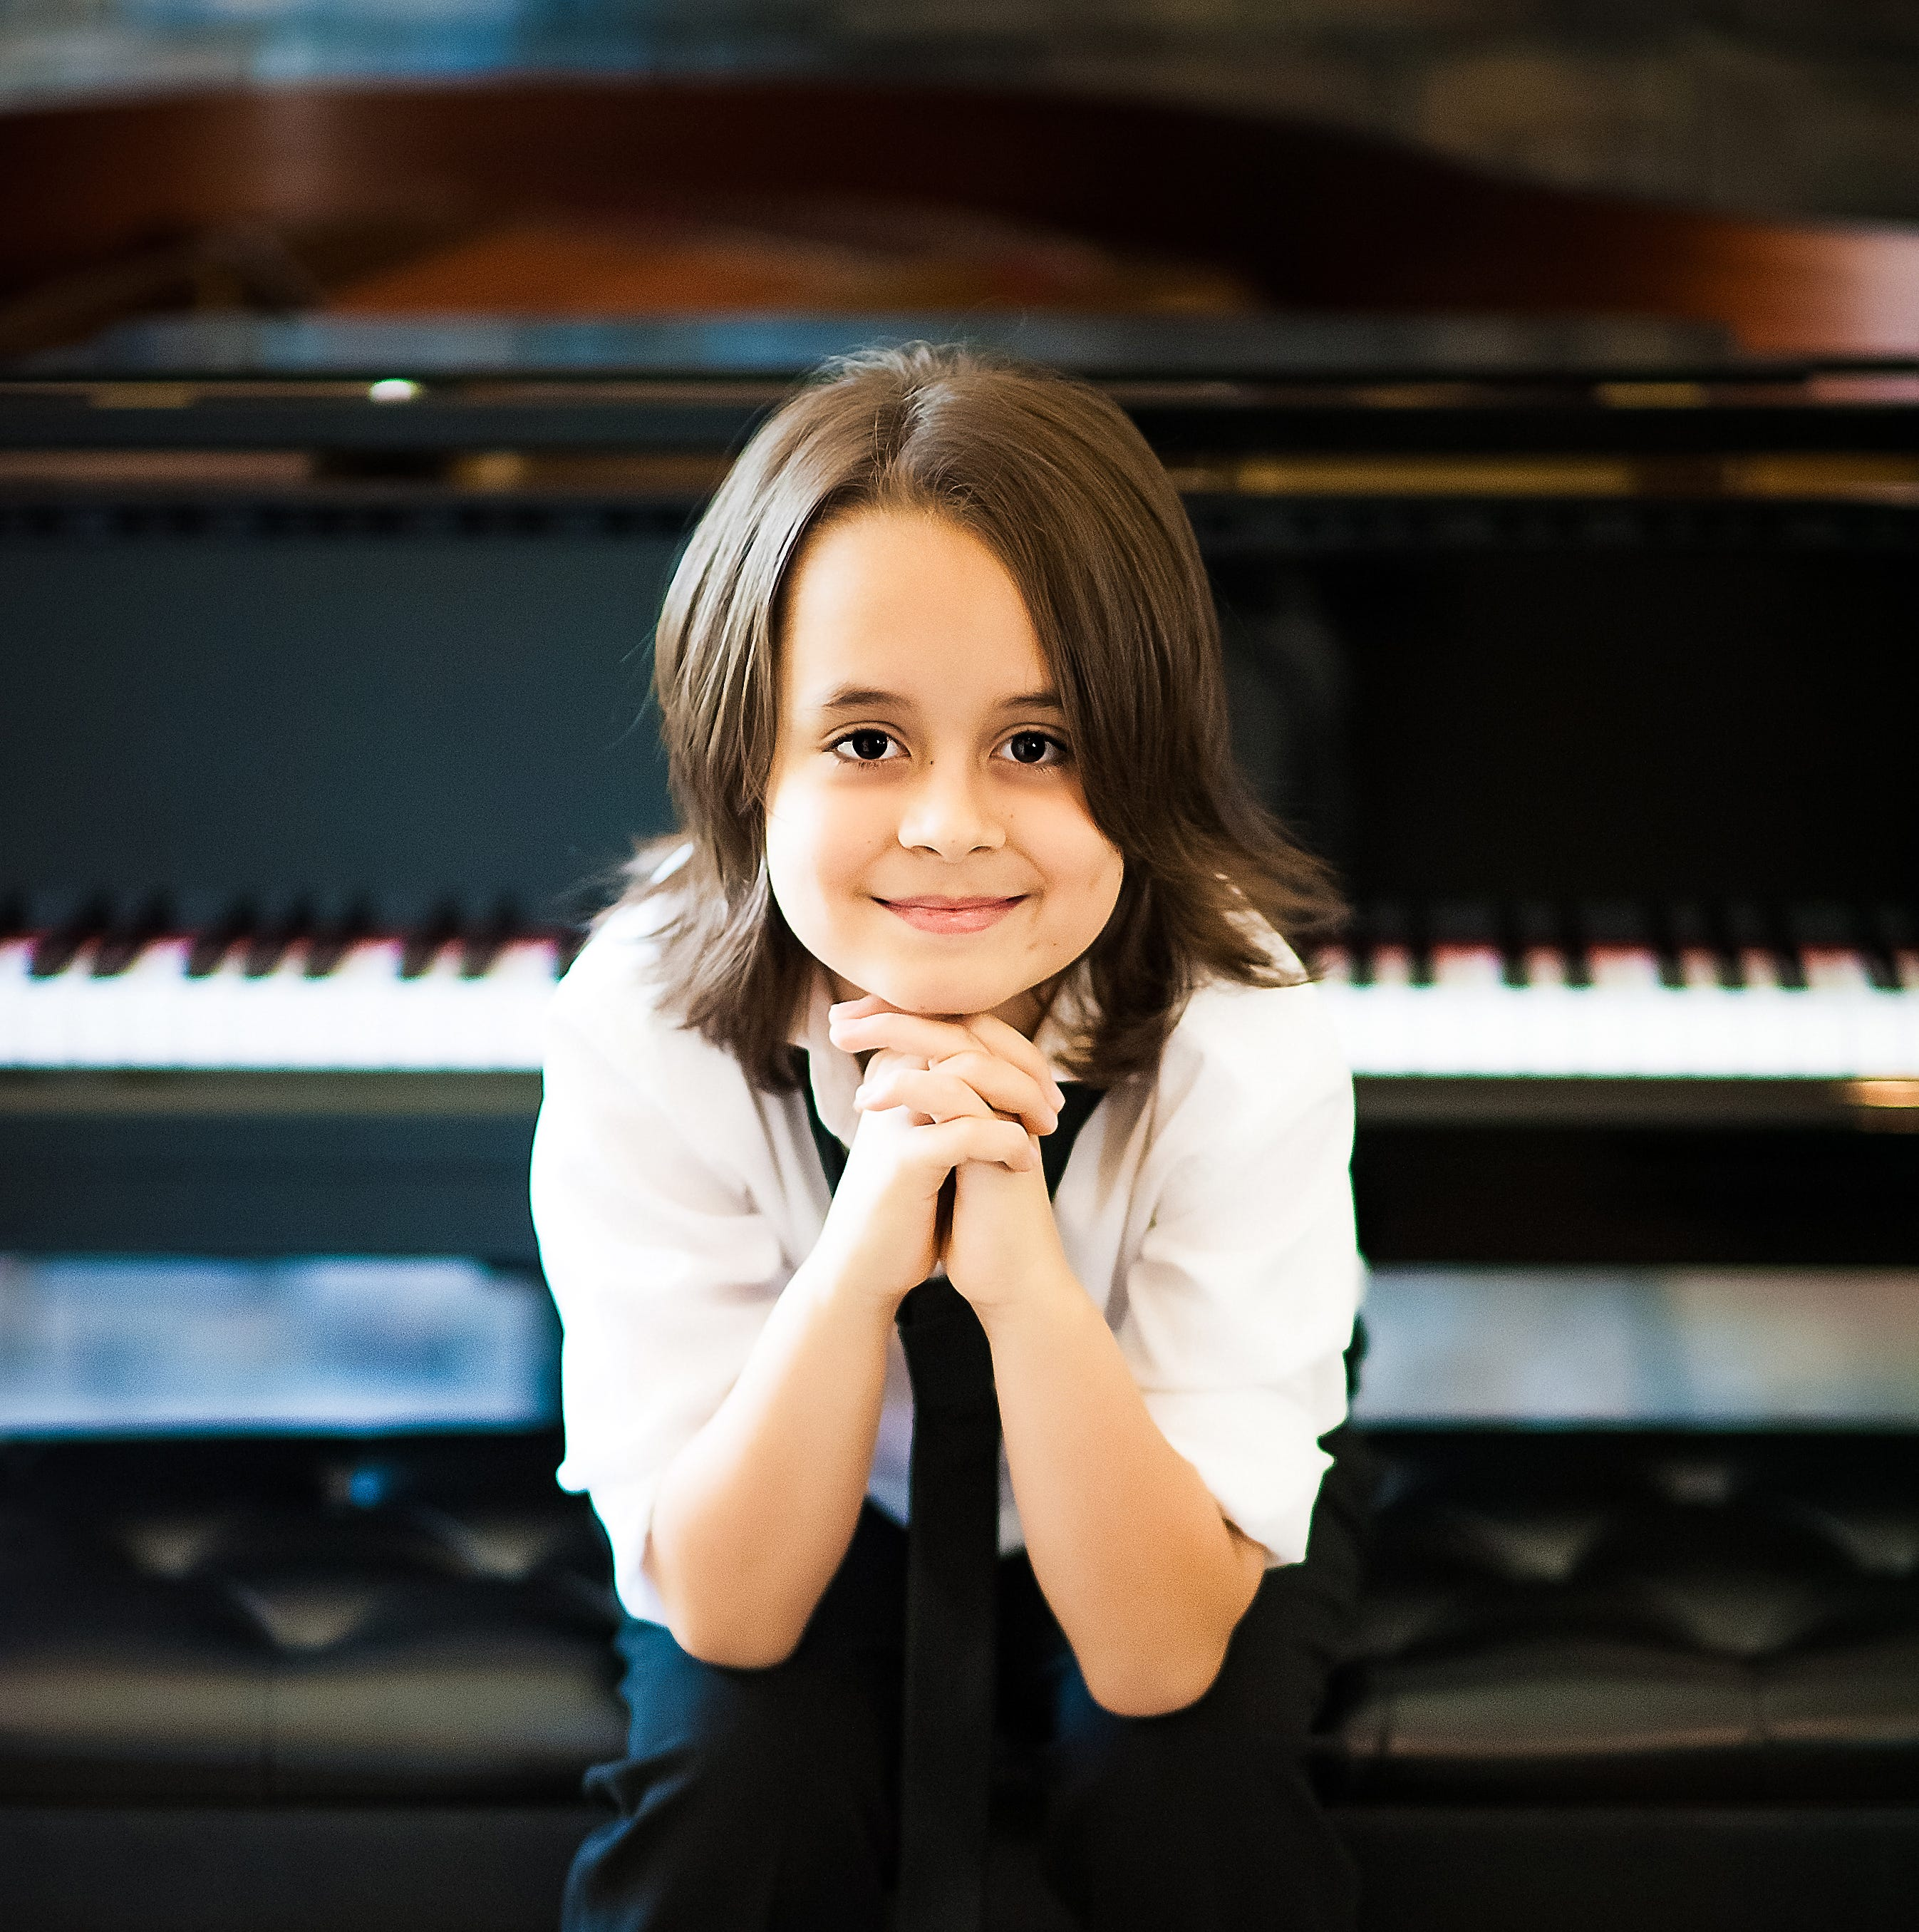 Ten-year-old piano wizard Jacob Velazquez is guest artist at the Aug. 26 debut of the Music on the River series.